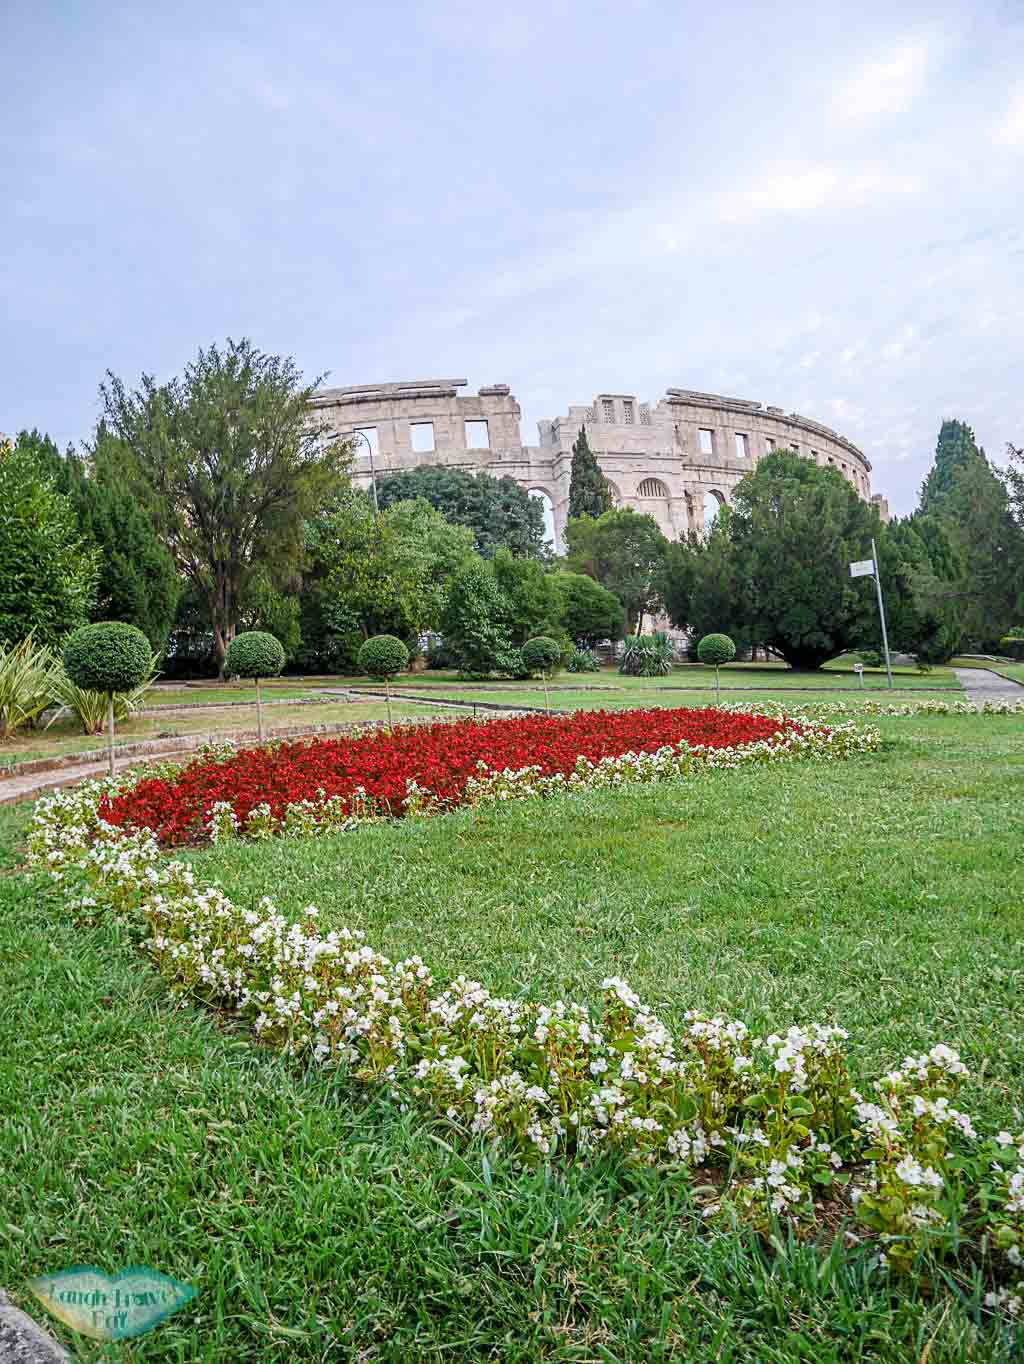 pula-arena-with-garden-in-front-pula-croatia